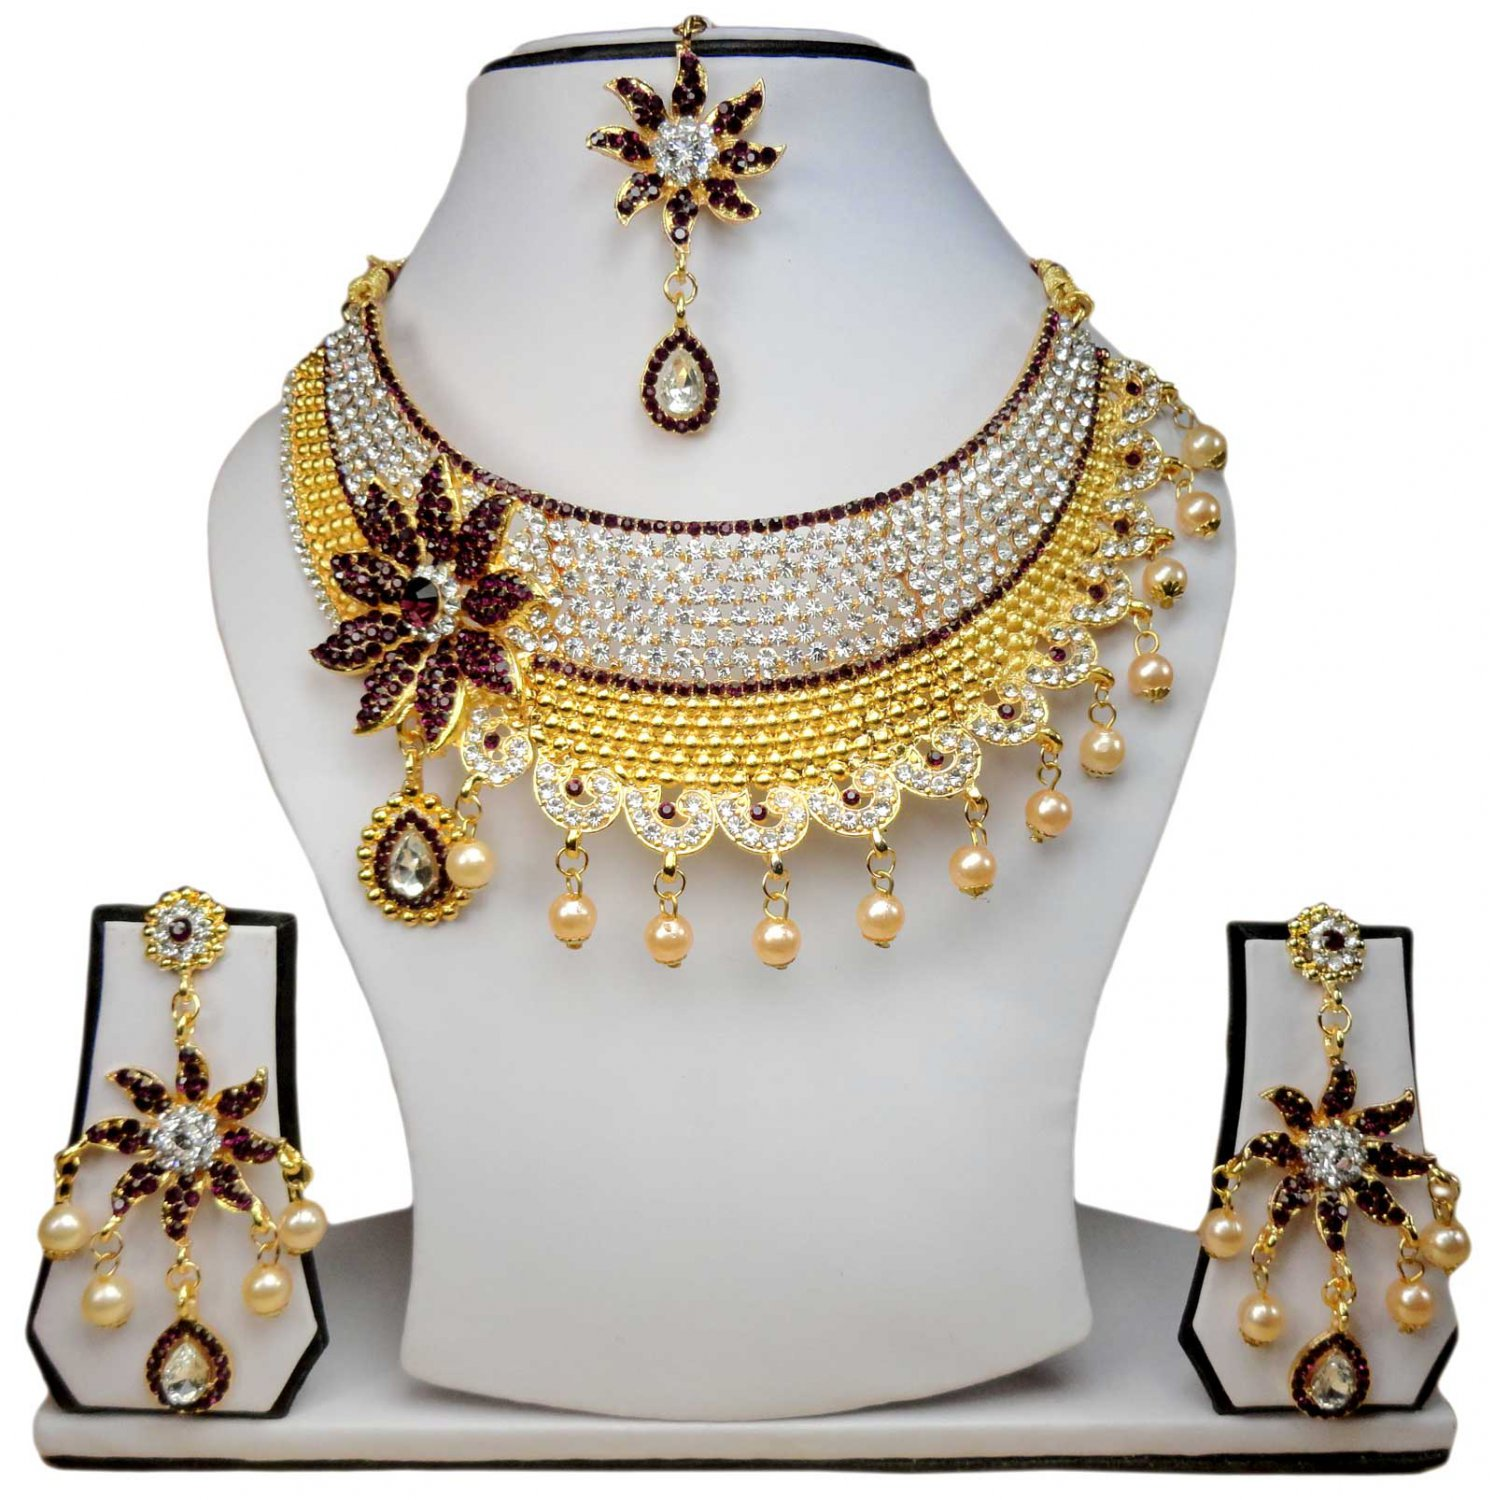 Gold Plated Stunning AD Pearl Jewelry Flower Styled Necklace Matching Earrings Set PurpleColor